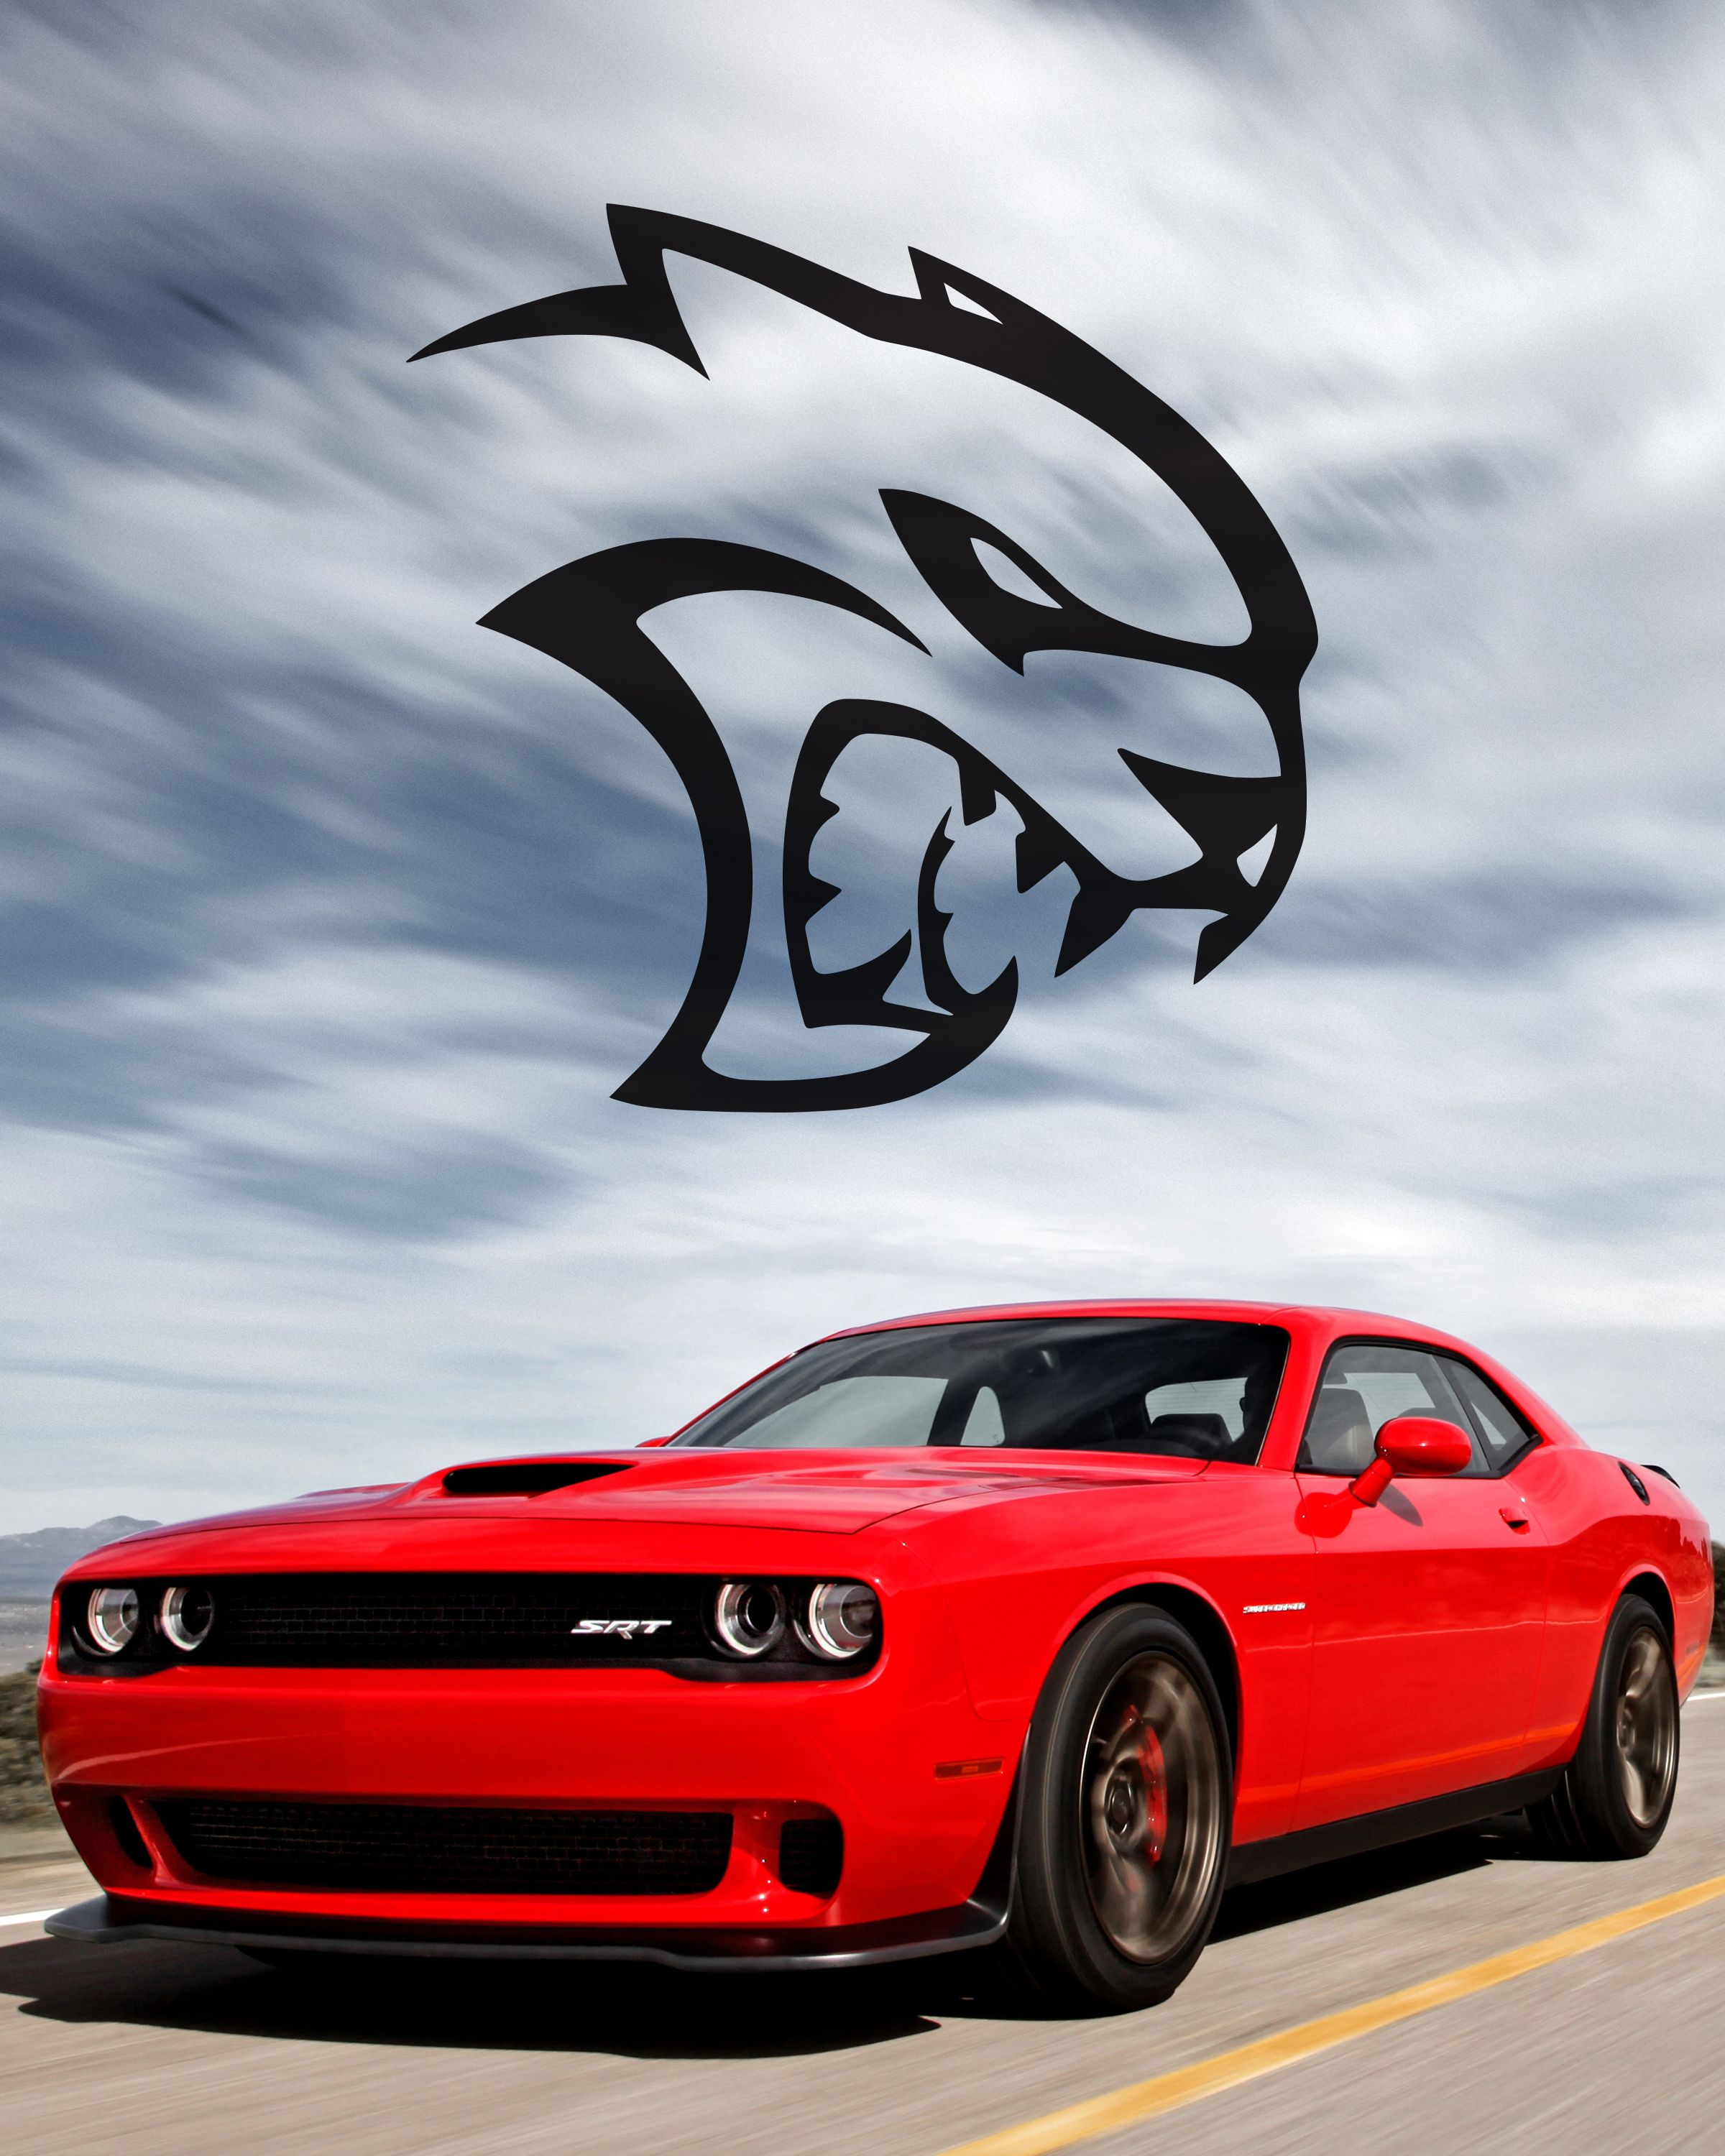 Hellcat Engine Ringtone And Wallpaper